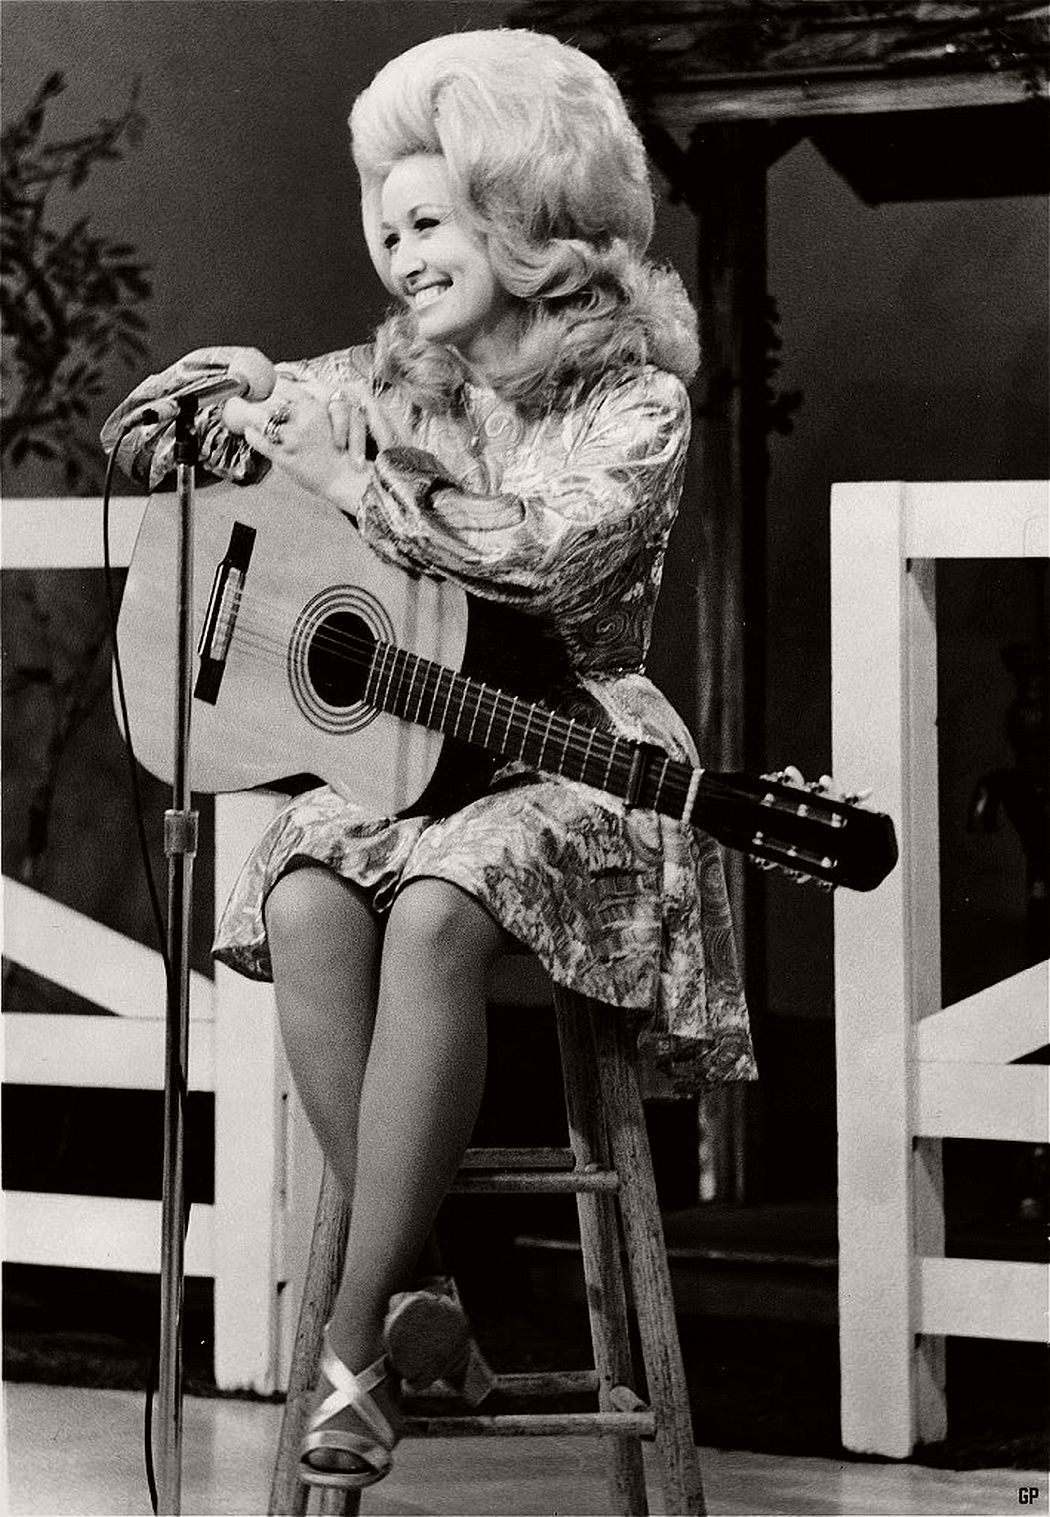 dolly-parton-in-the-1970s-vintage-portraits-12